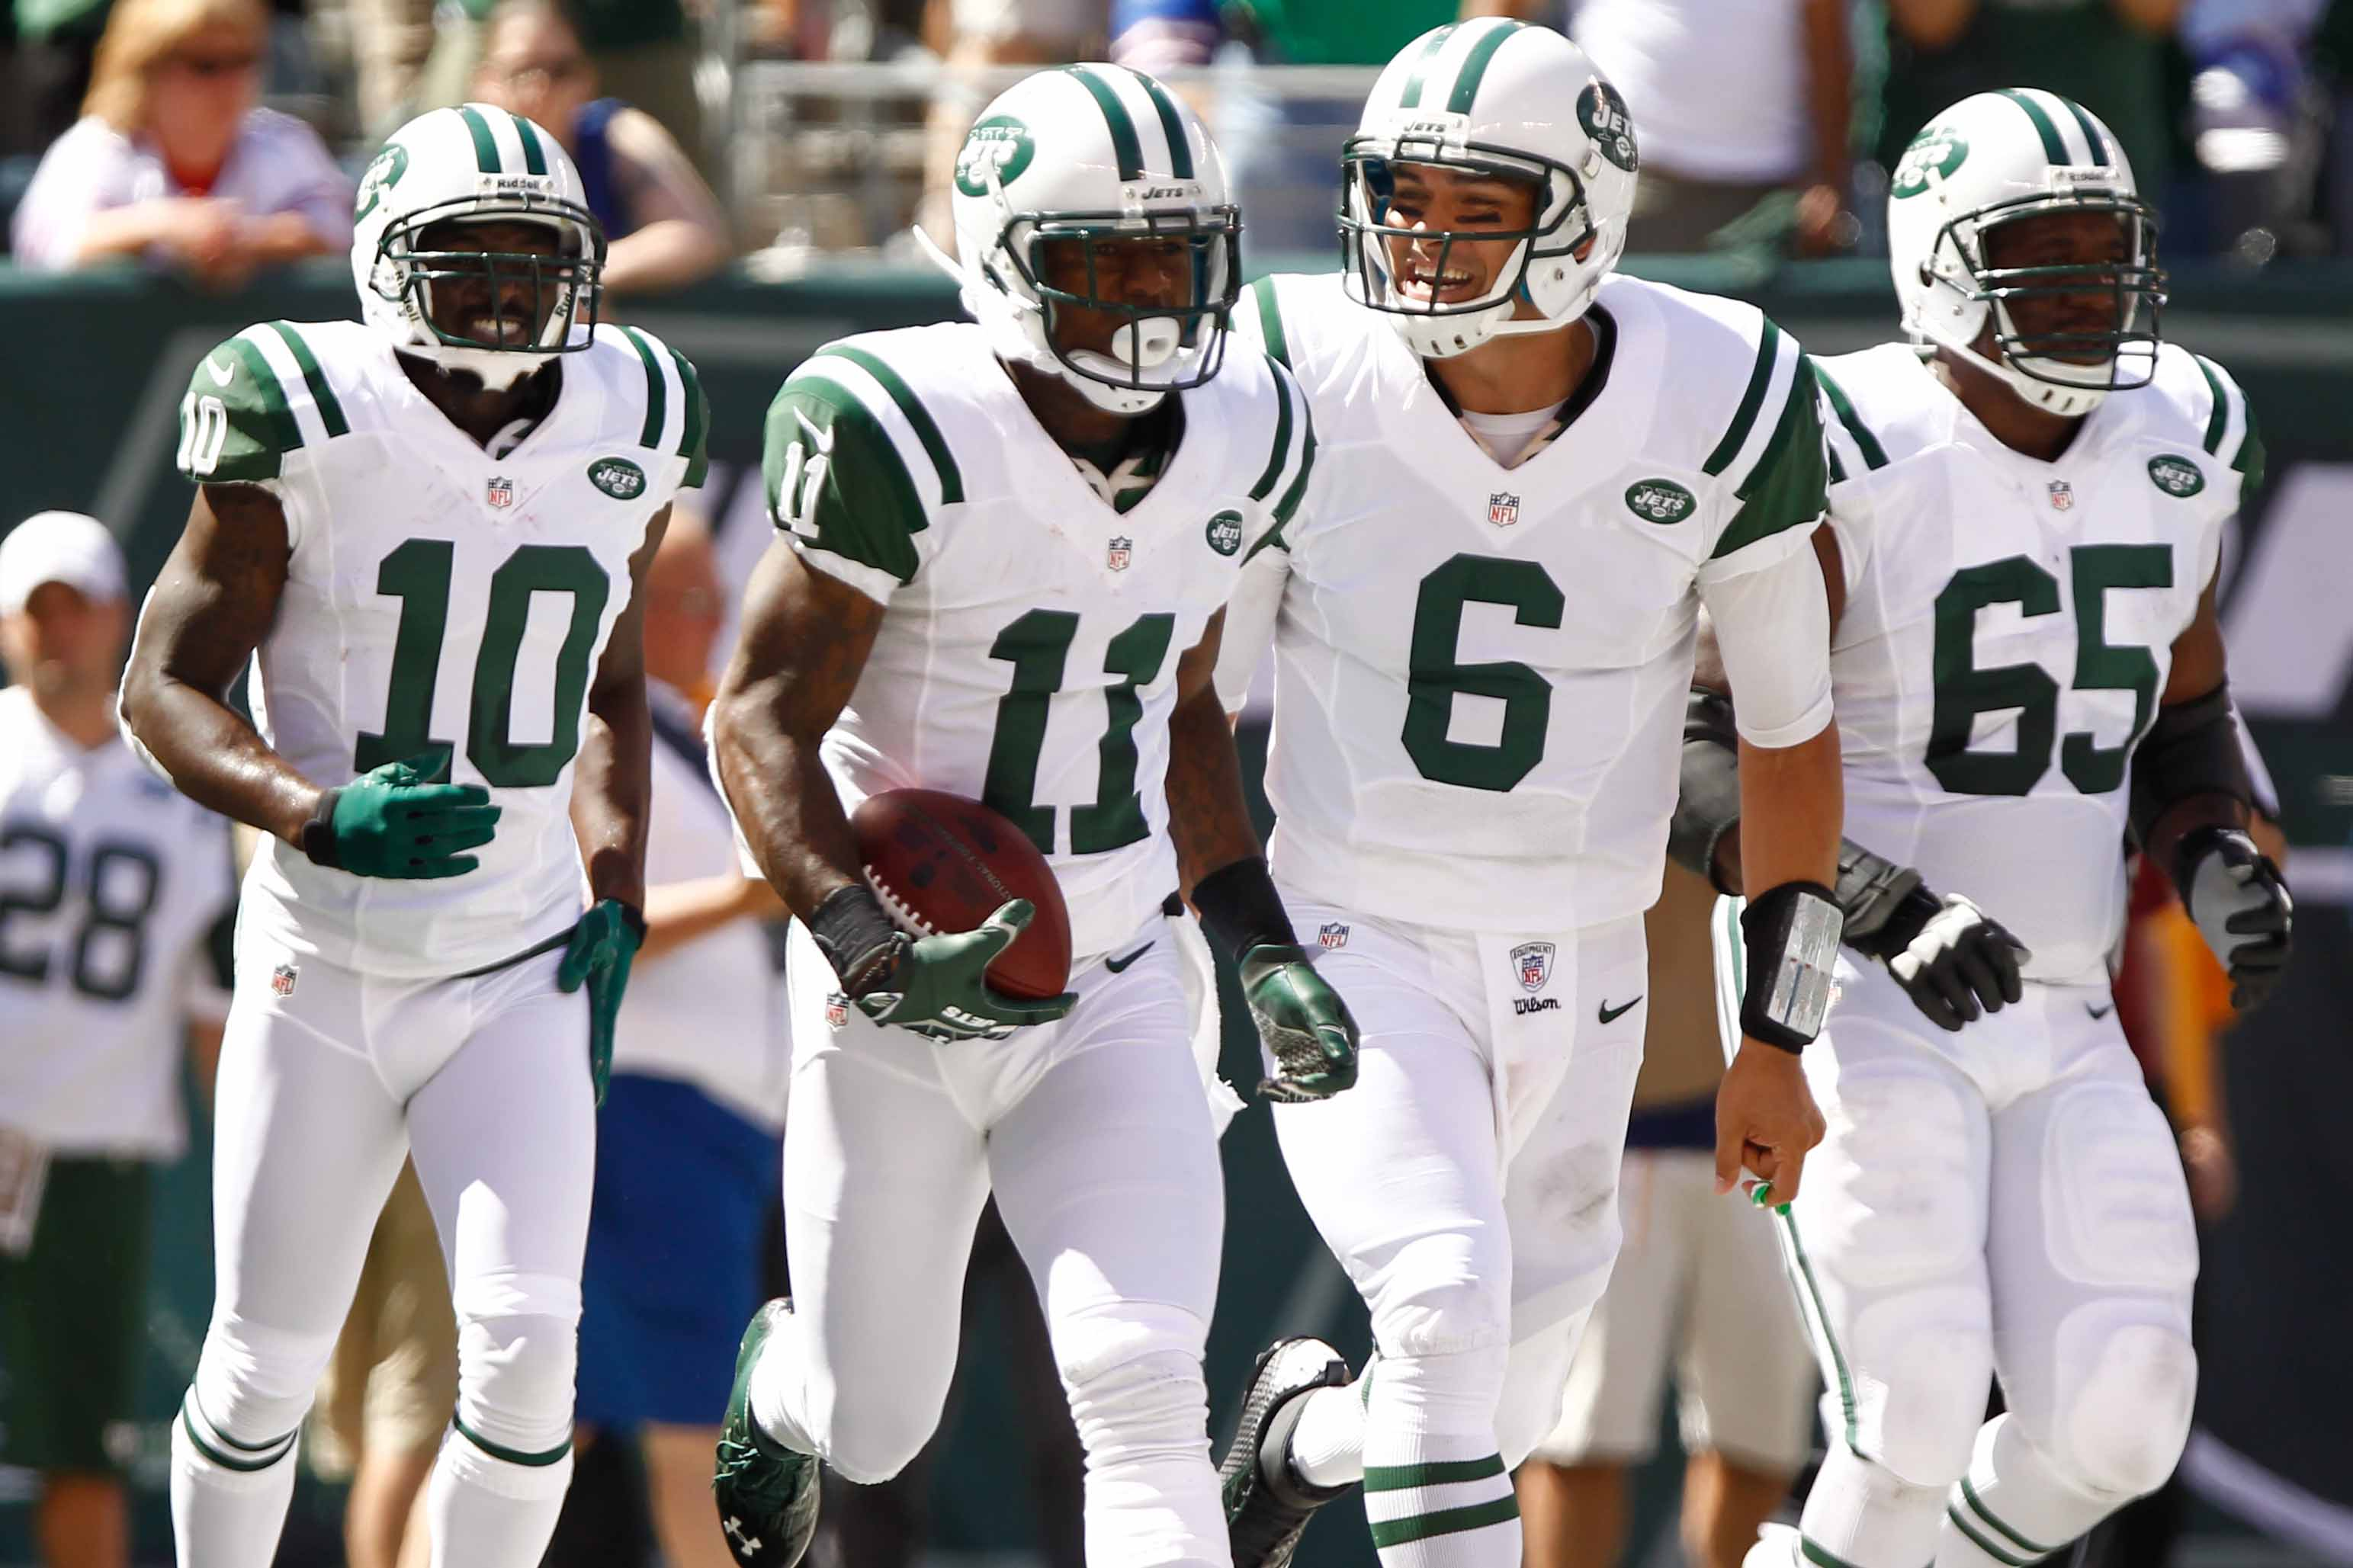 NY Jets Bounce Bills, 48-28